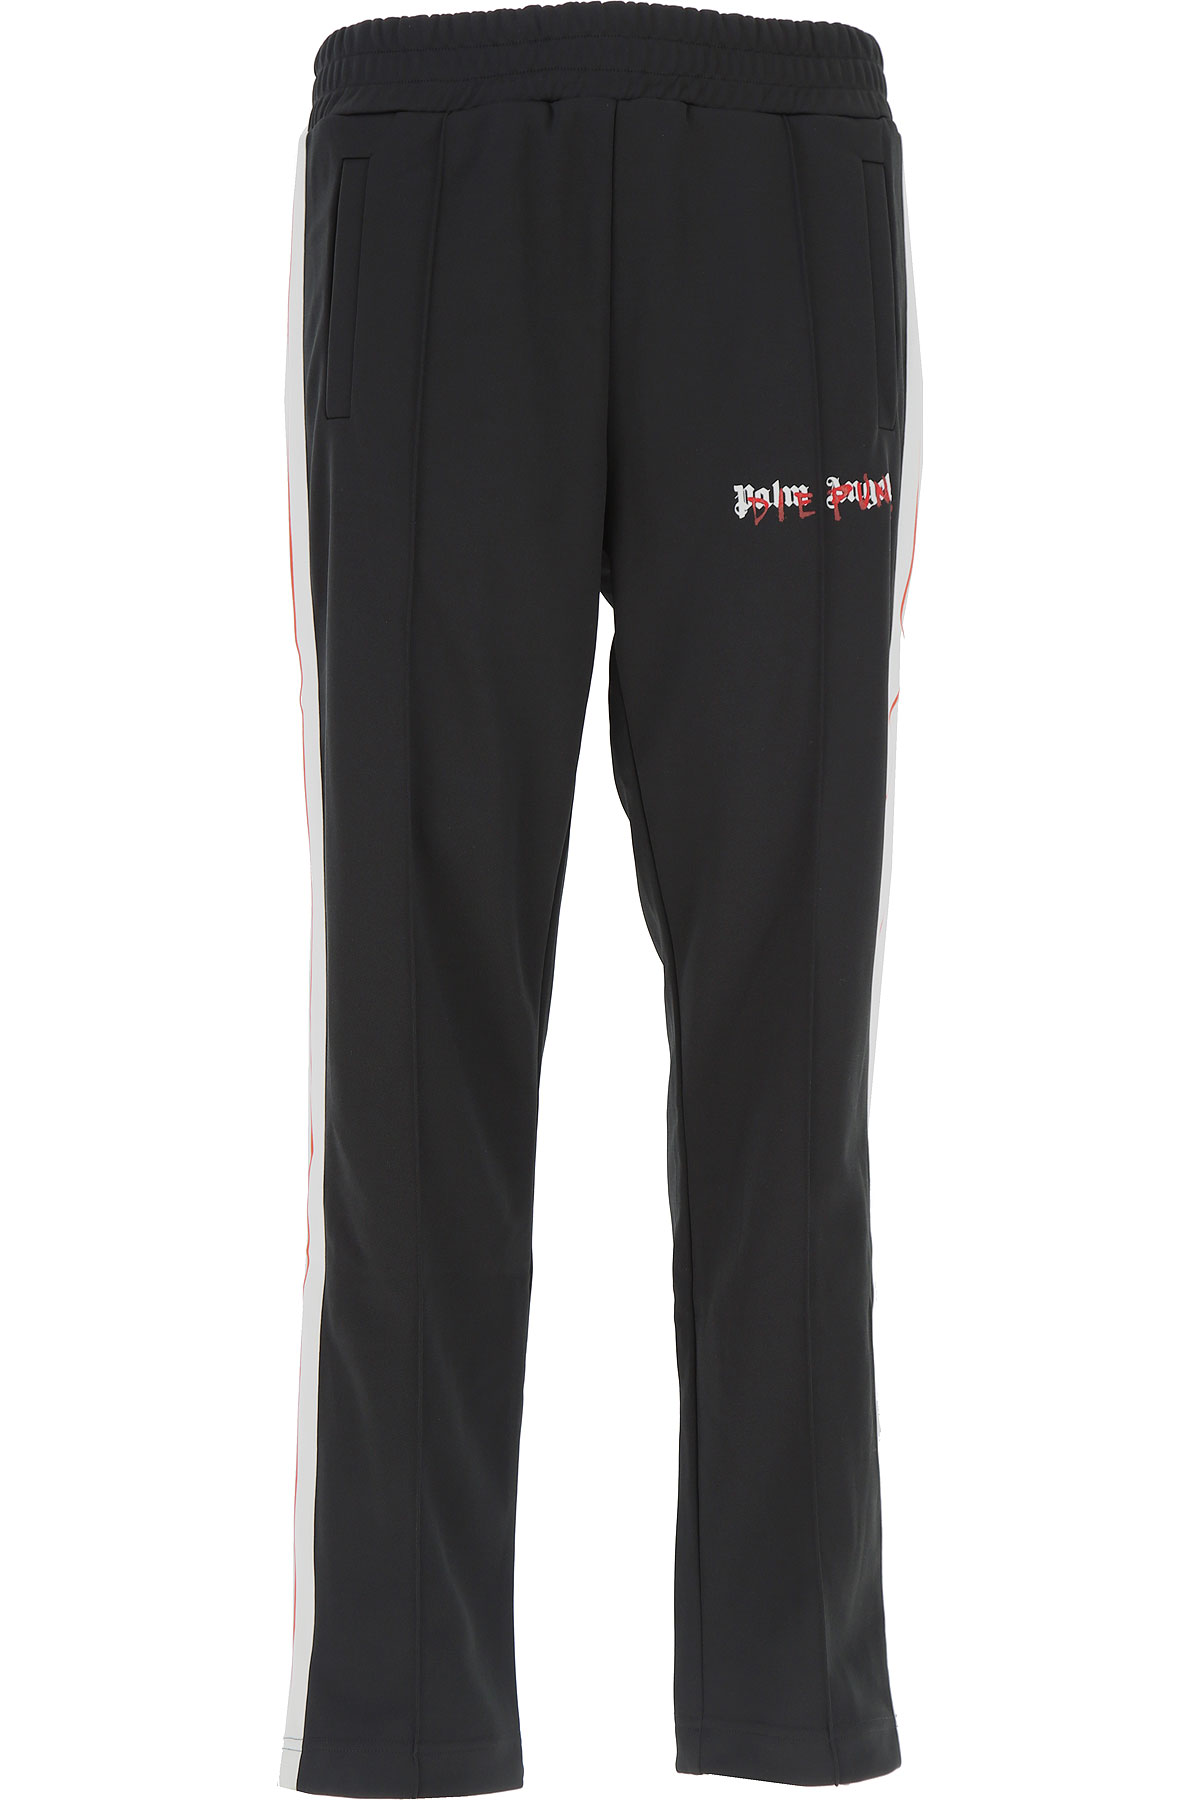 Image of Palm Angels Pants for Men, Black, polyester, 2017, L M S XL